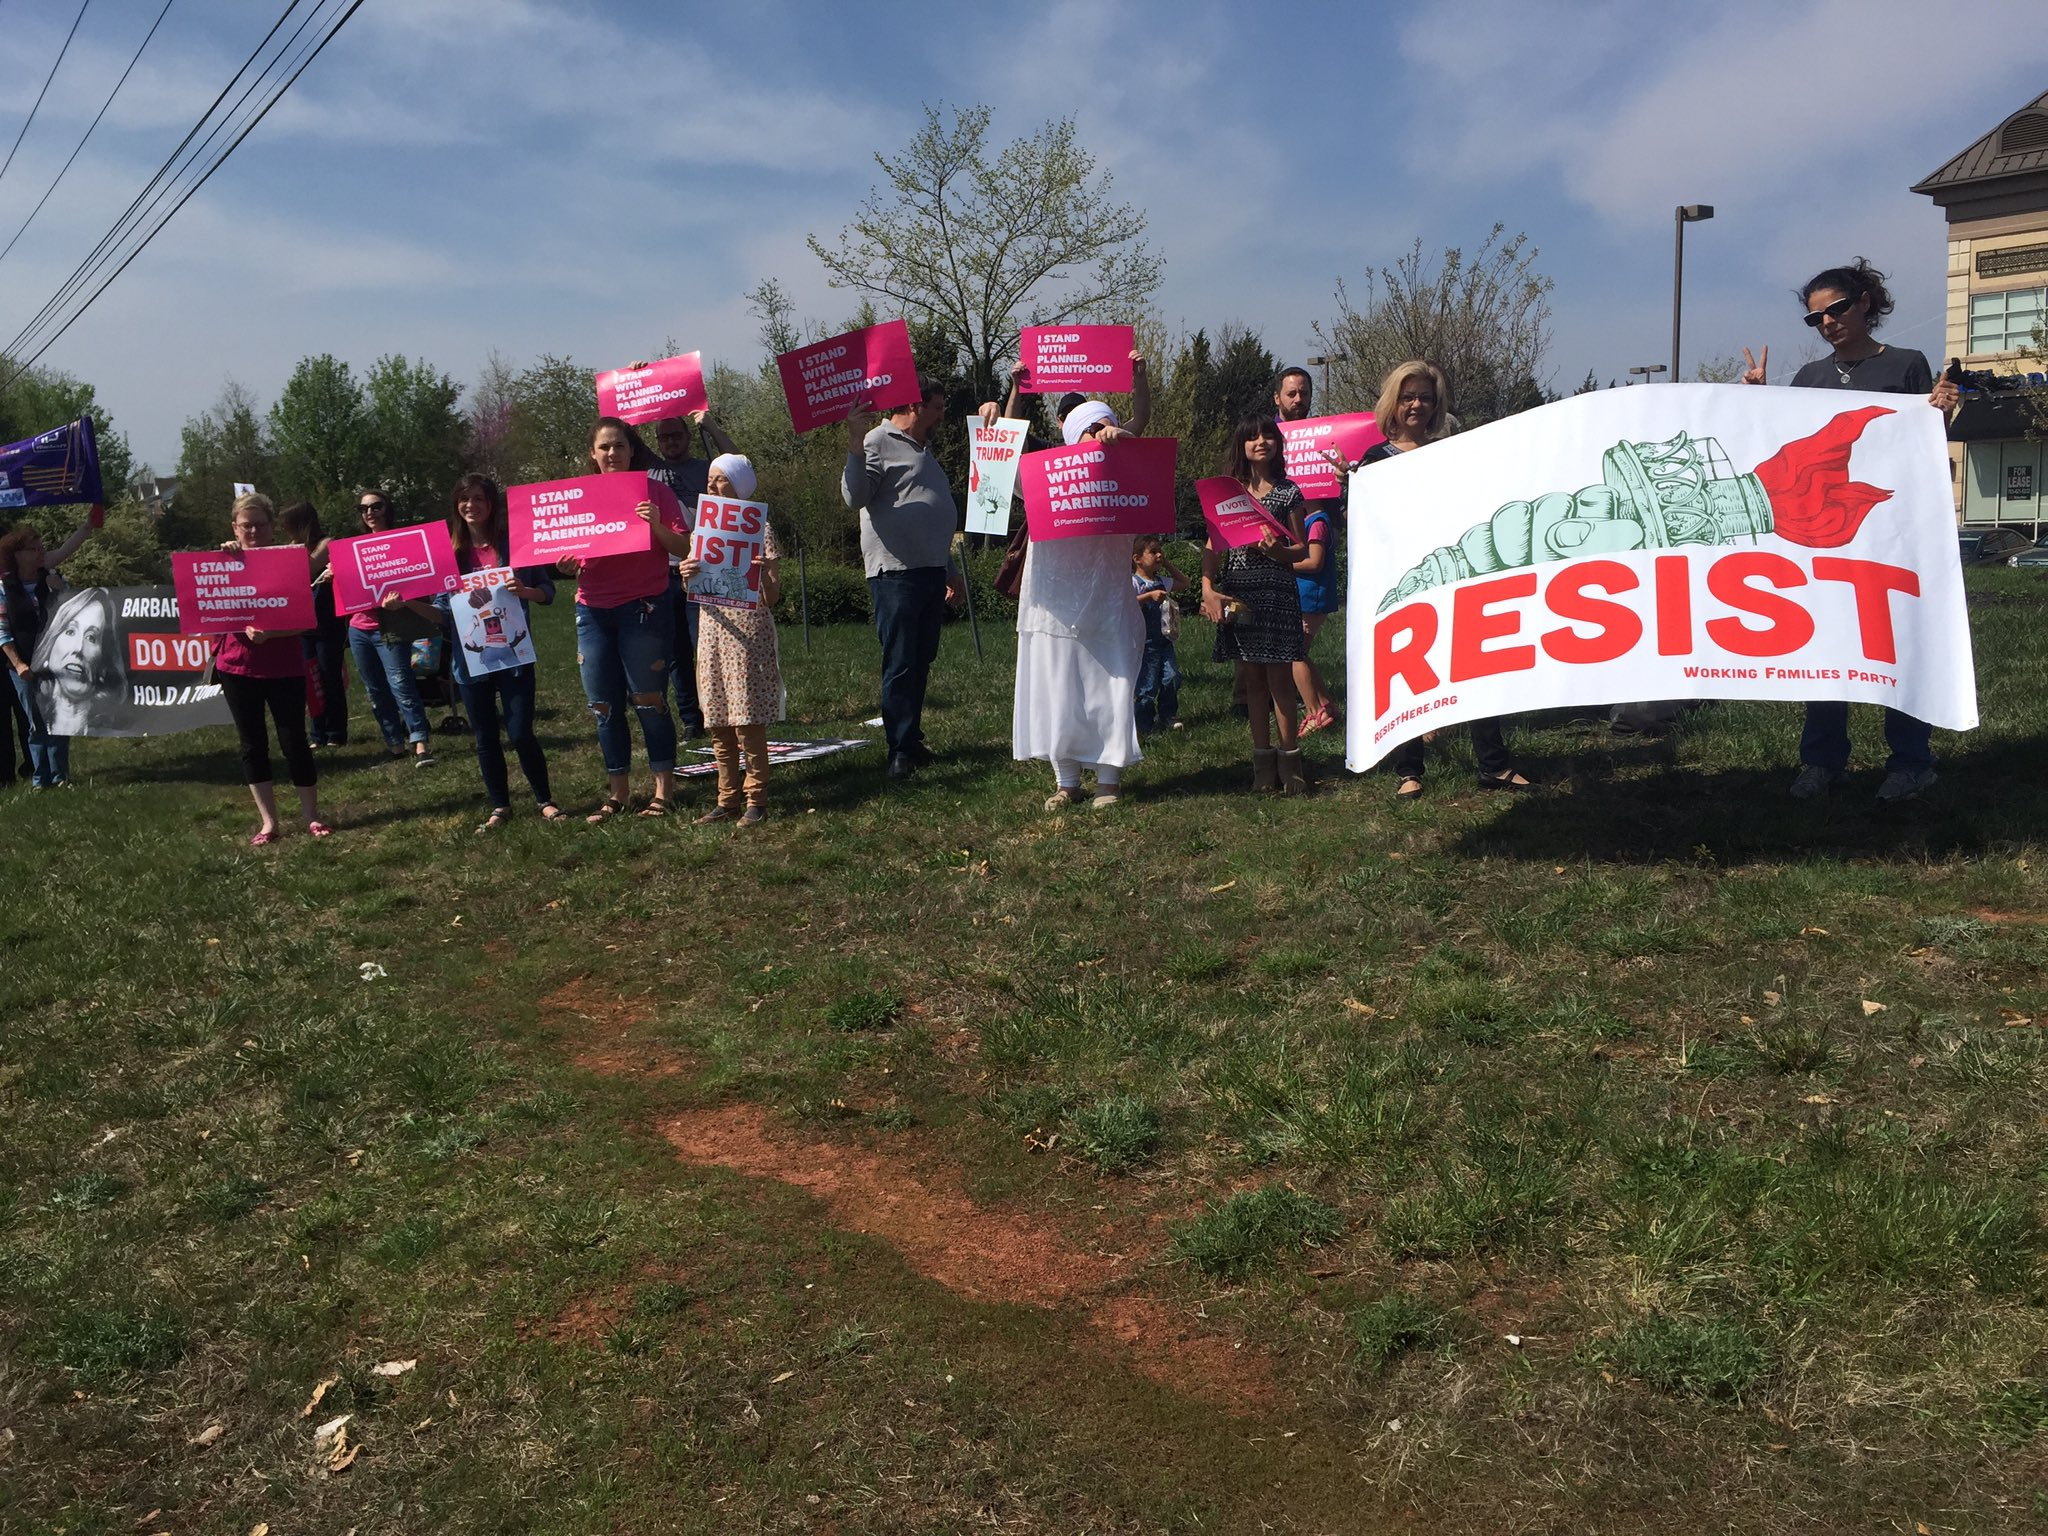 Day 4 #resistancerecess Standing up for PP, ACA at Rep. B. Comstock 's (R-VA CD10) ofc. She refuses to meet w/constituents in her CD. https://t.co/Afk6V57au8